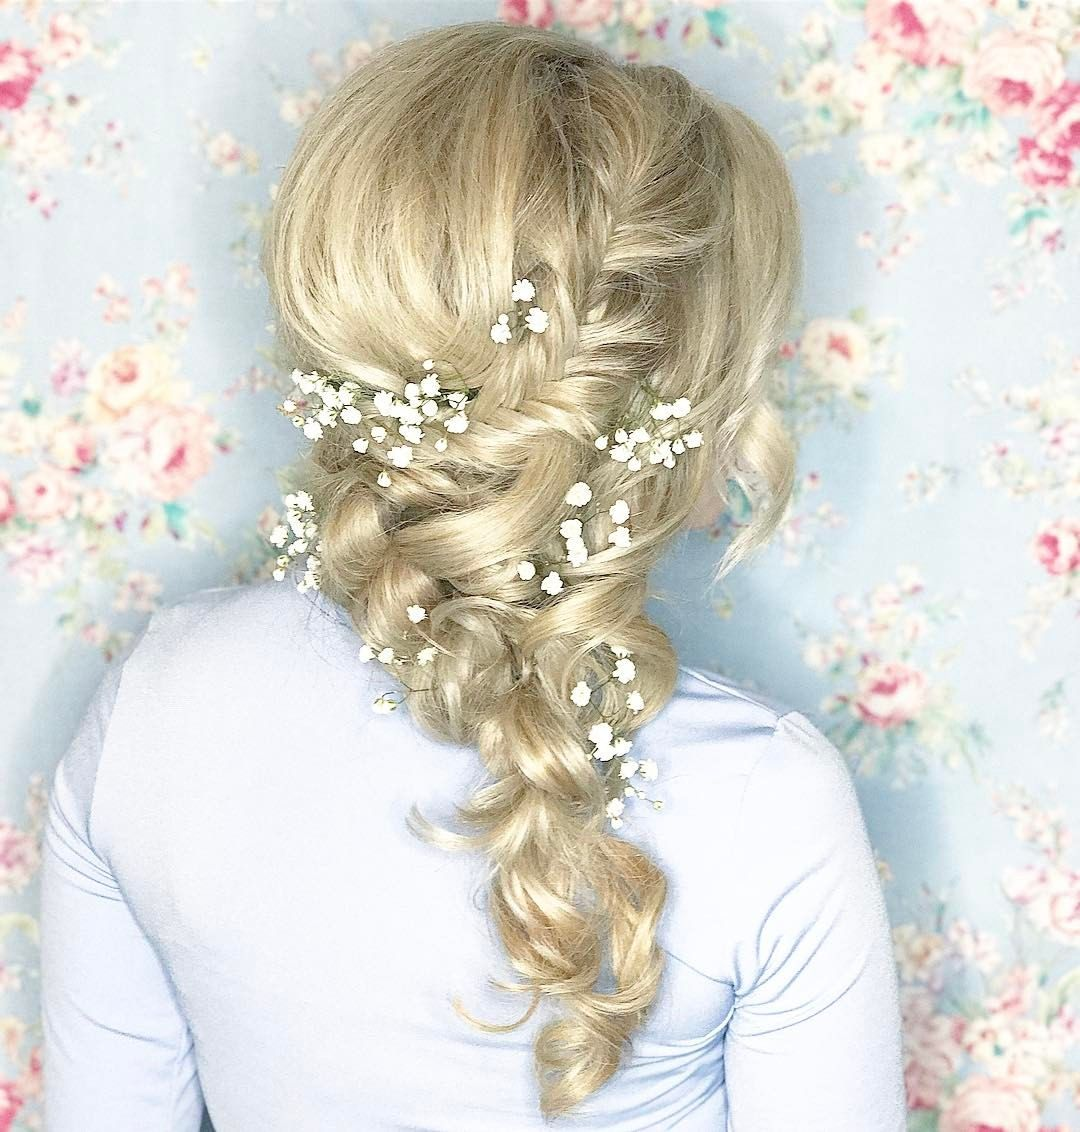 Sideswept hairstyle for maternity shoot Fishtail braid bridal hair ...